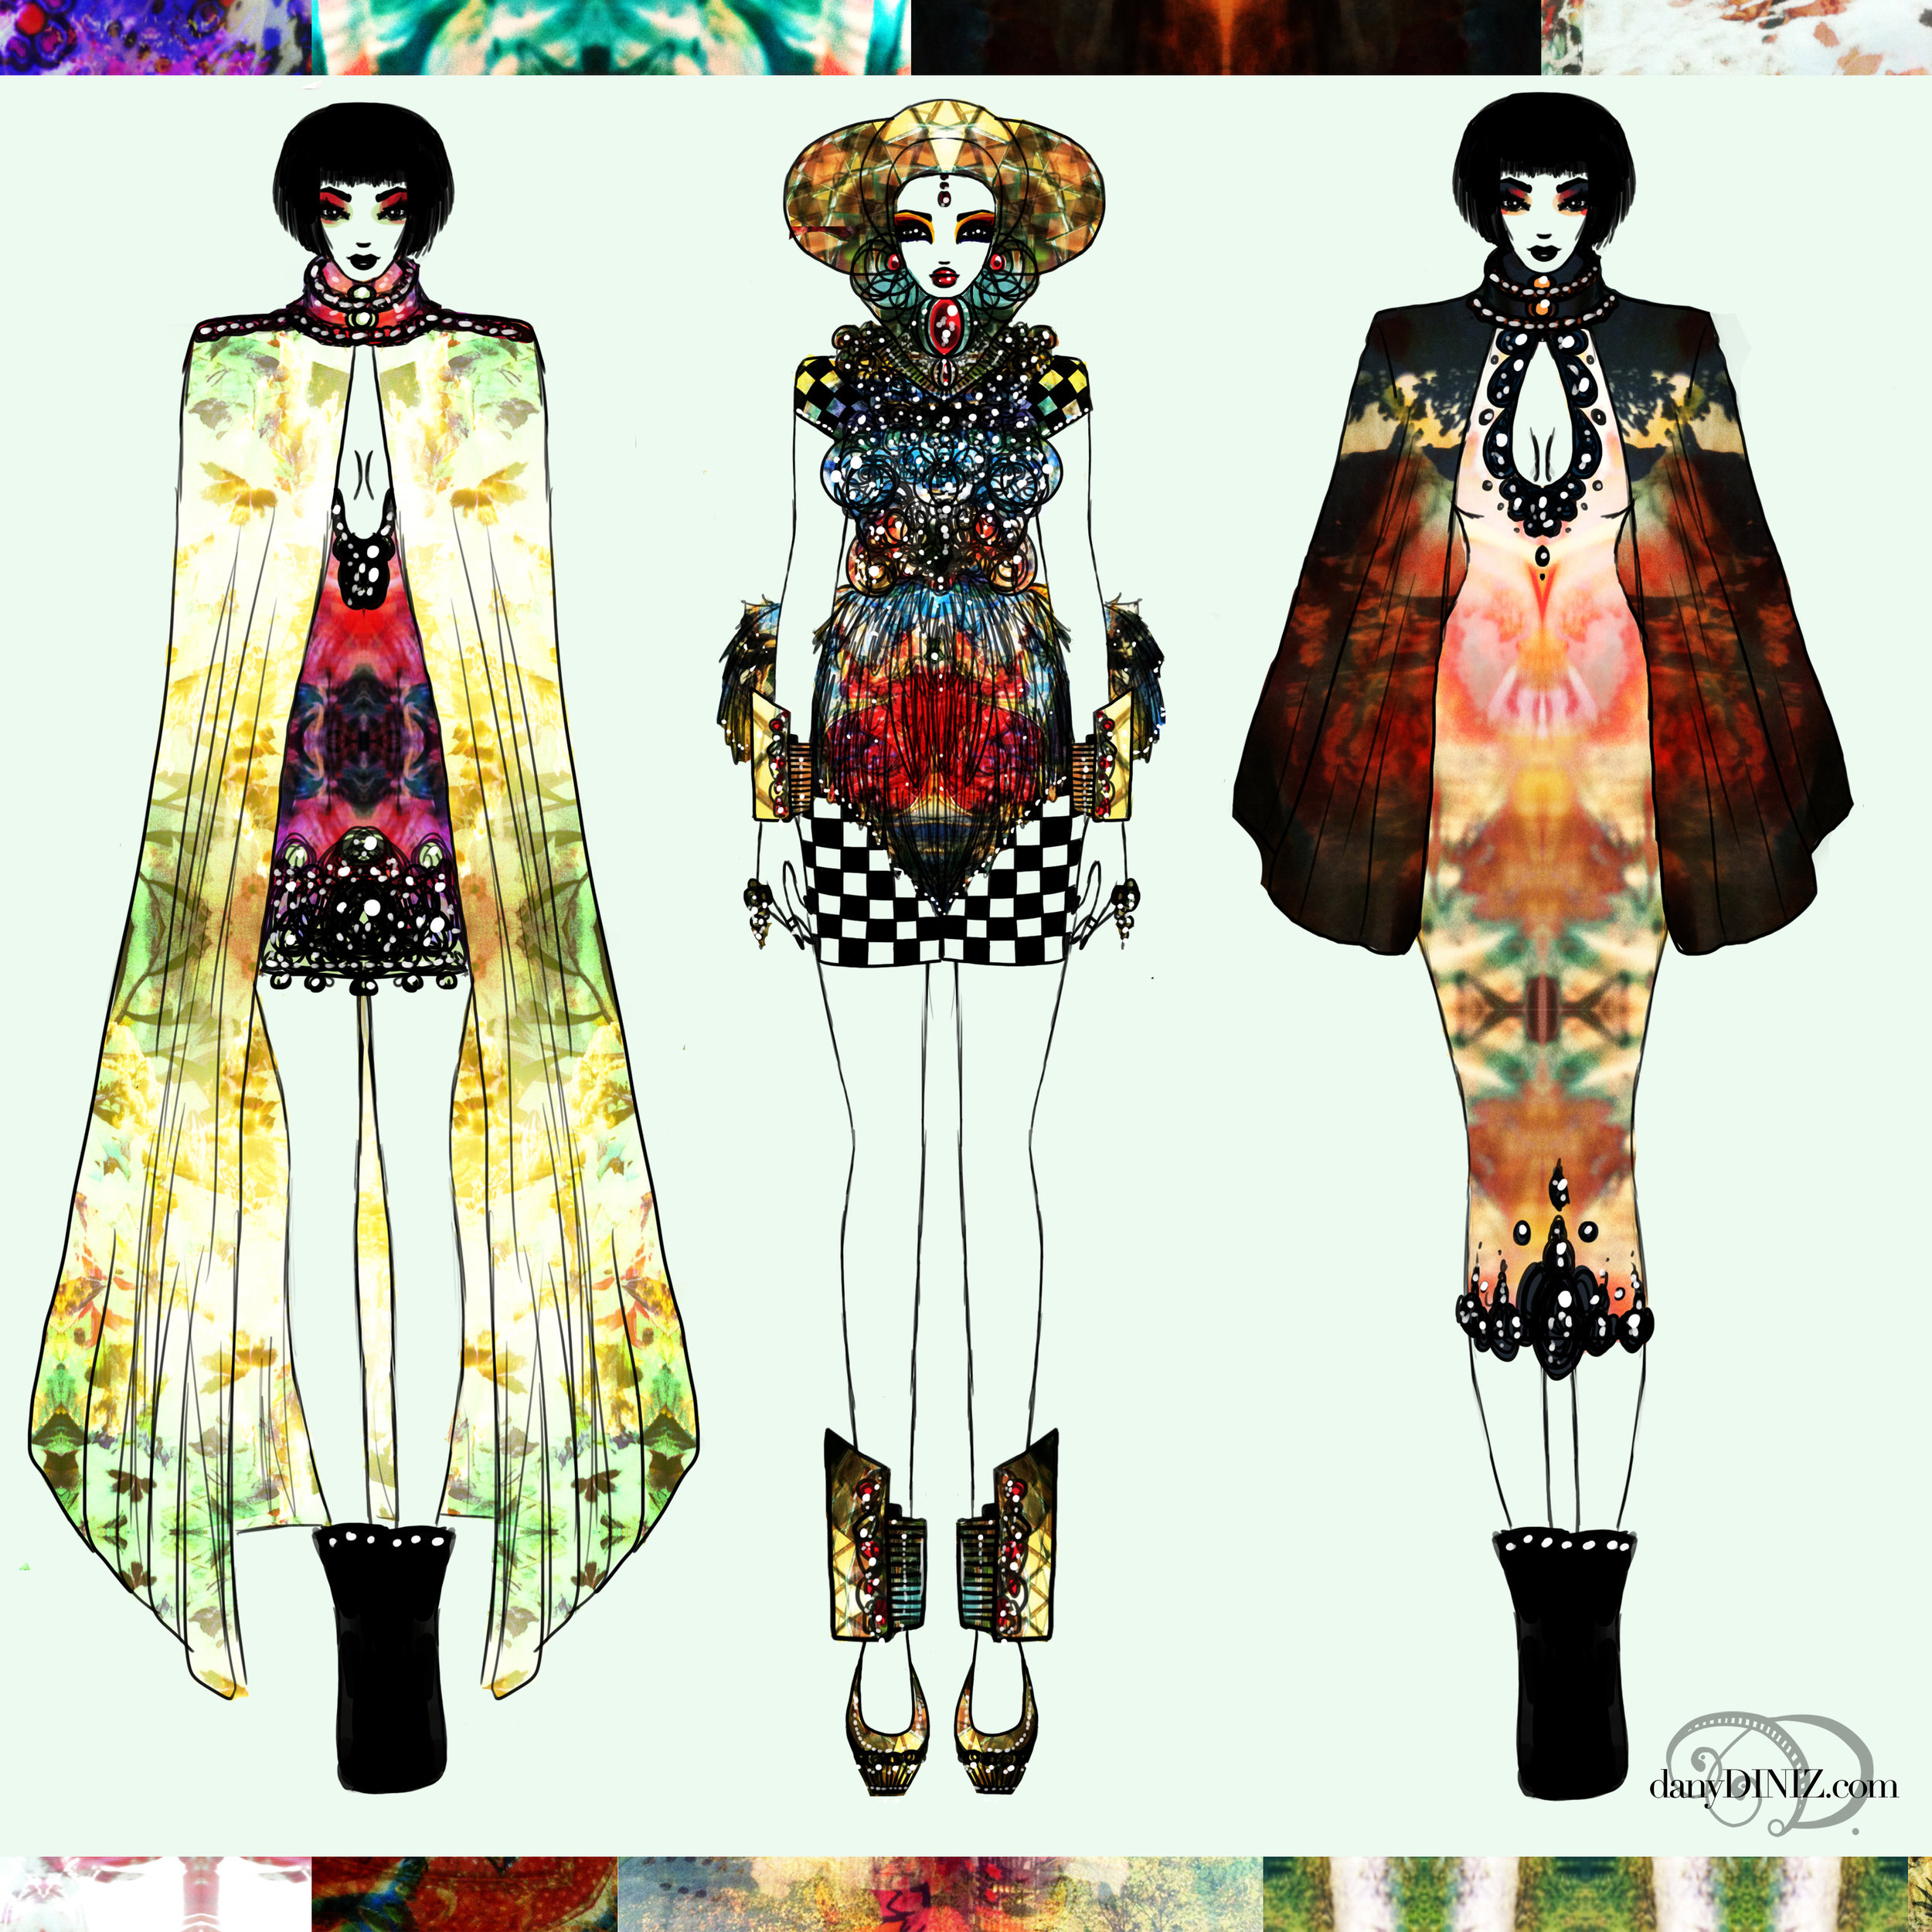 FASHION AND TEXTURES